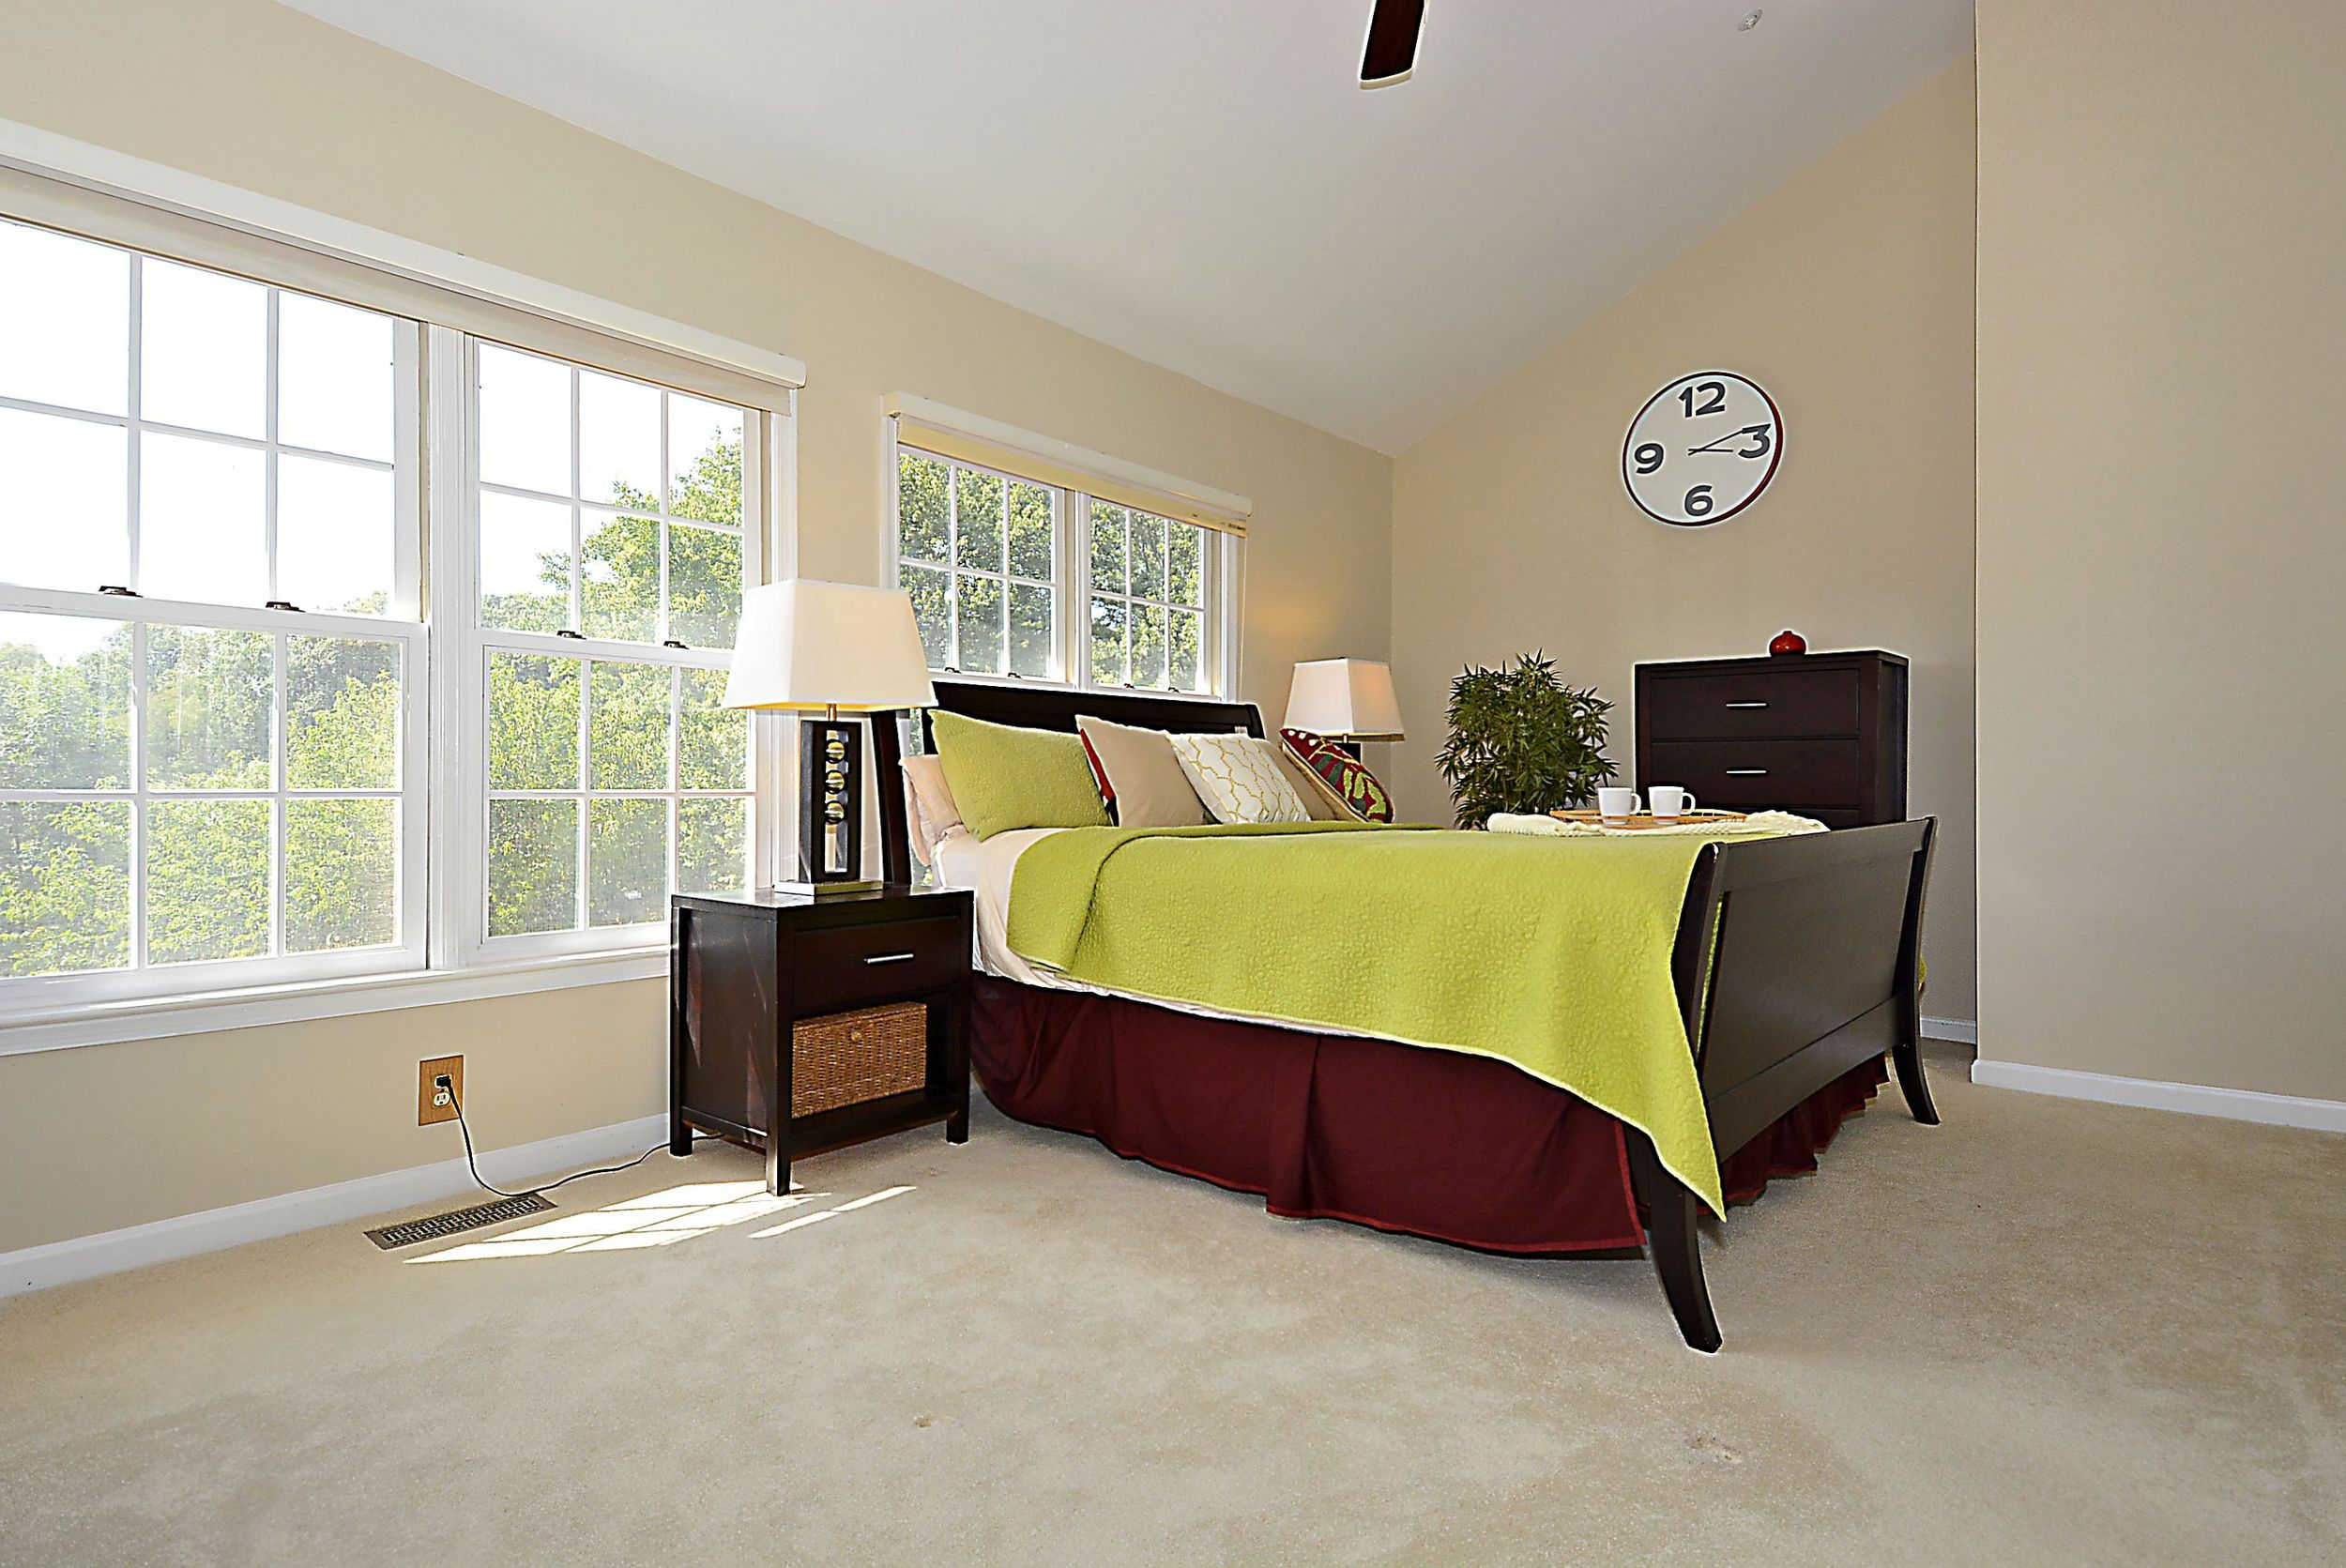 Print_Upper Floor I-Master Bedroom_1.JPG